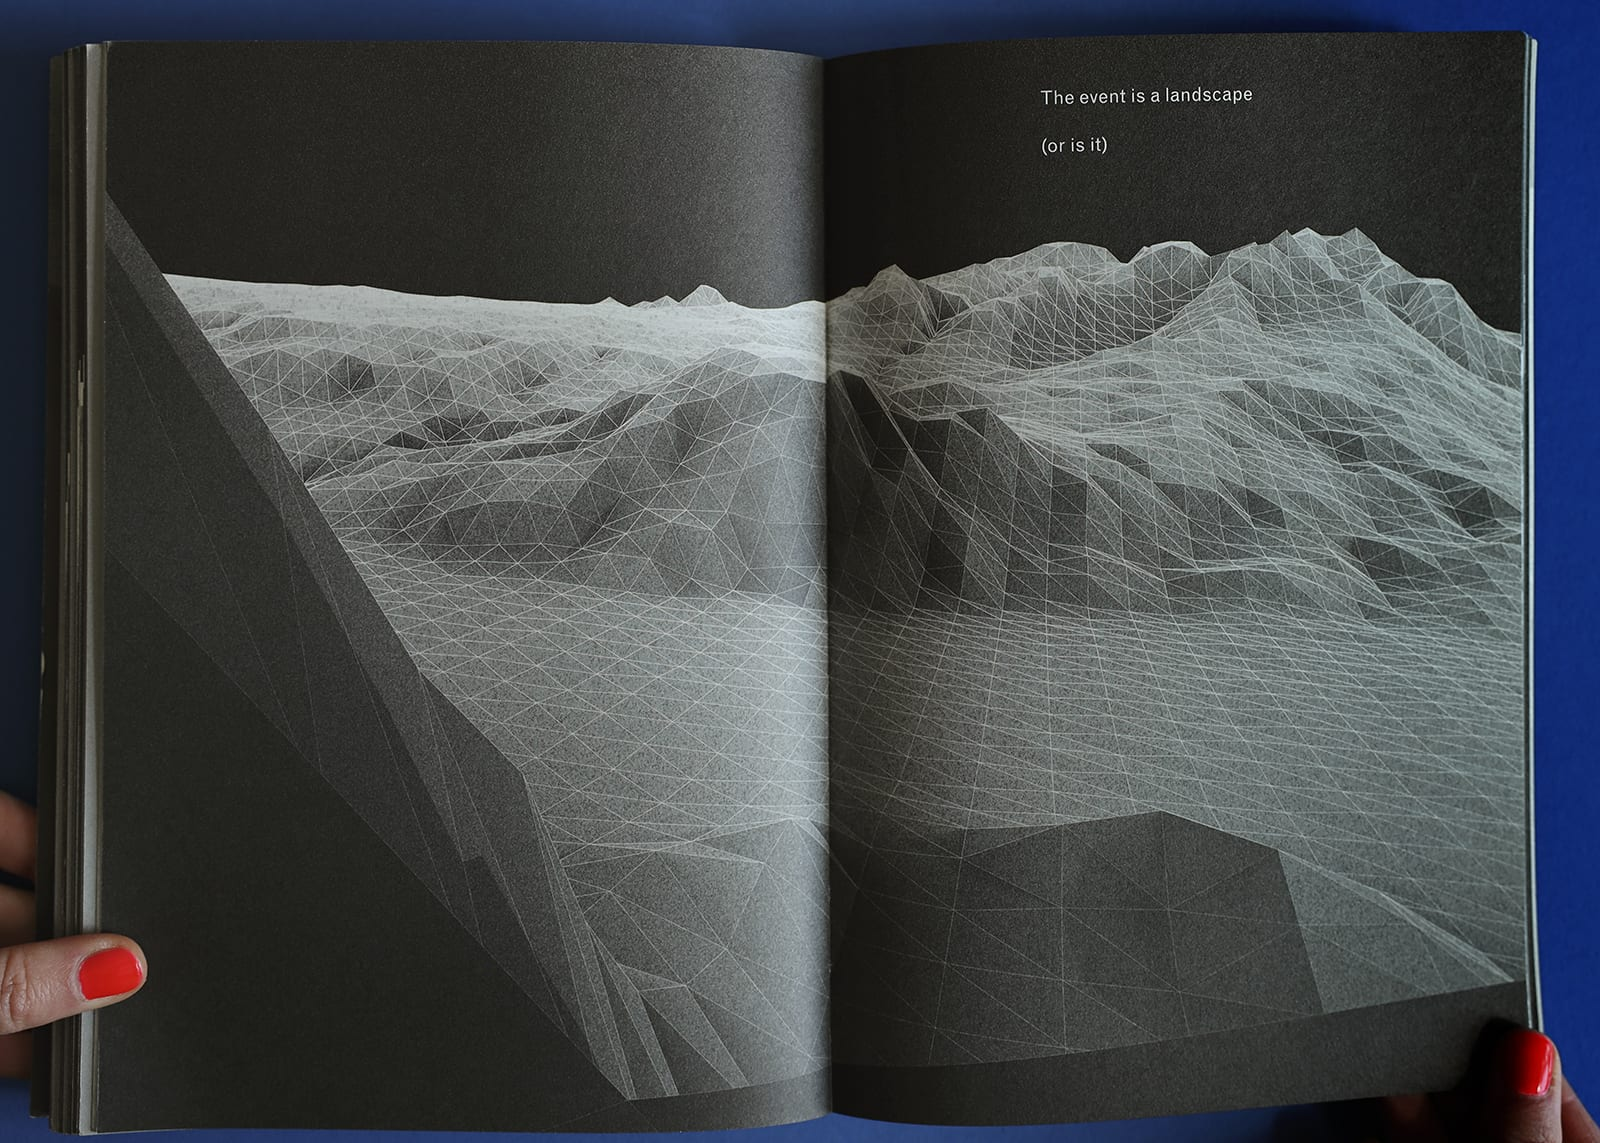 """Open-book spread of Imaginary Explosions, page 86. Above black-and-white graphic of mountain topography, text reads, """"The event is a landscape (or is it)"""""""